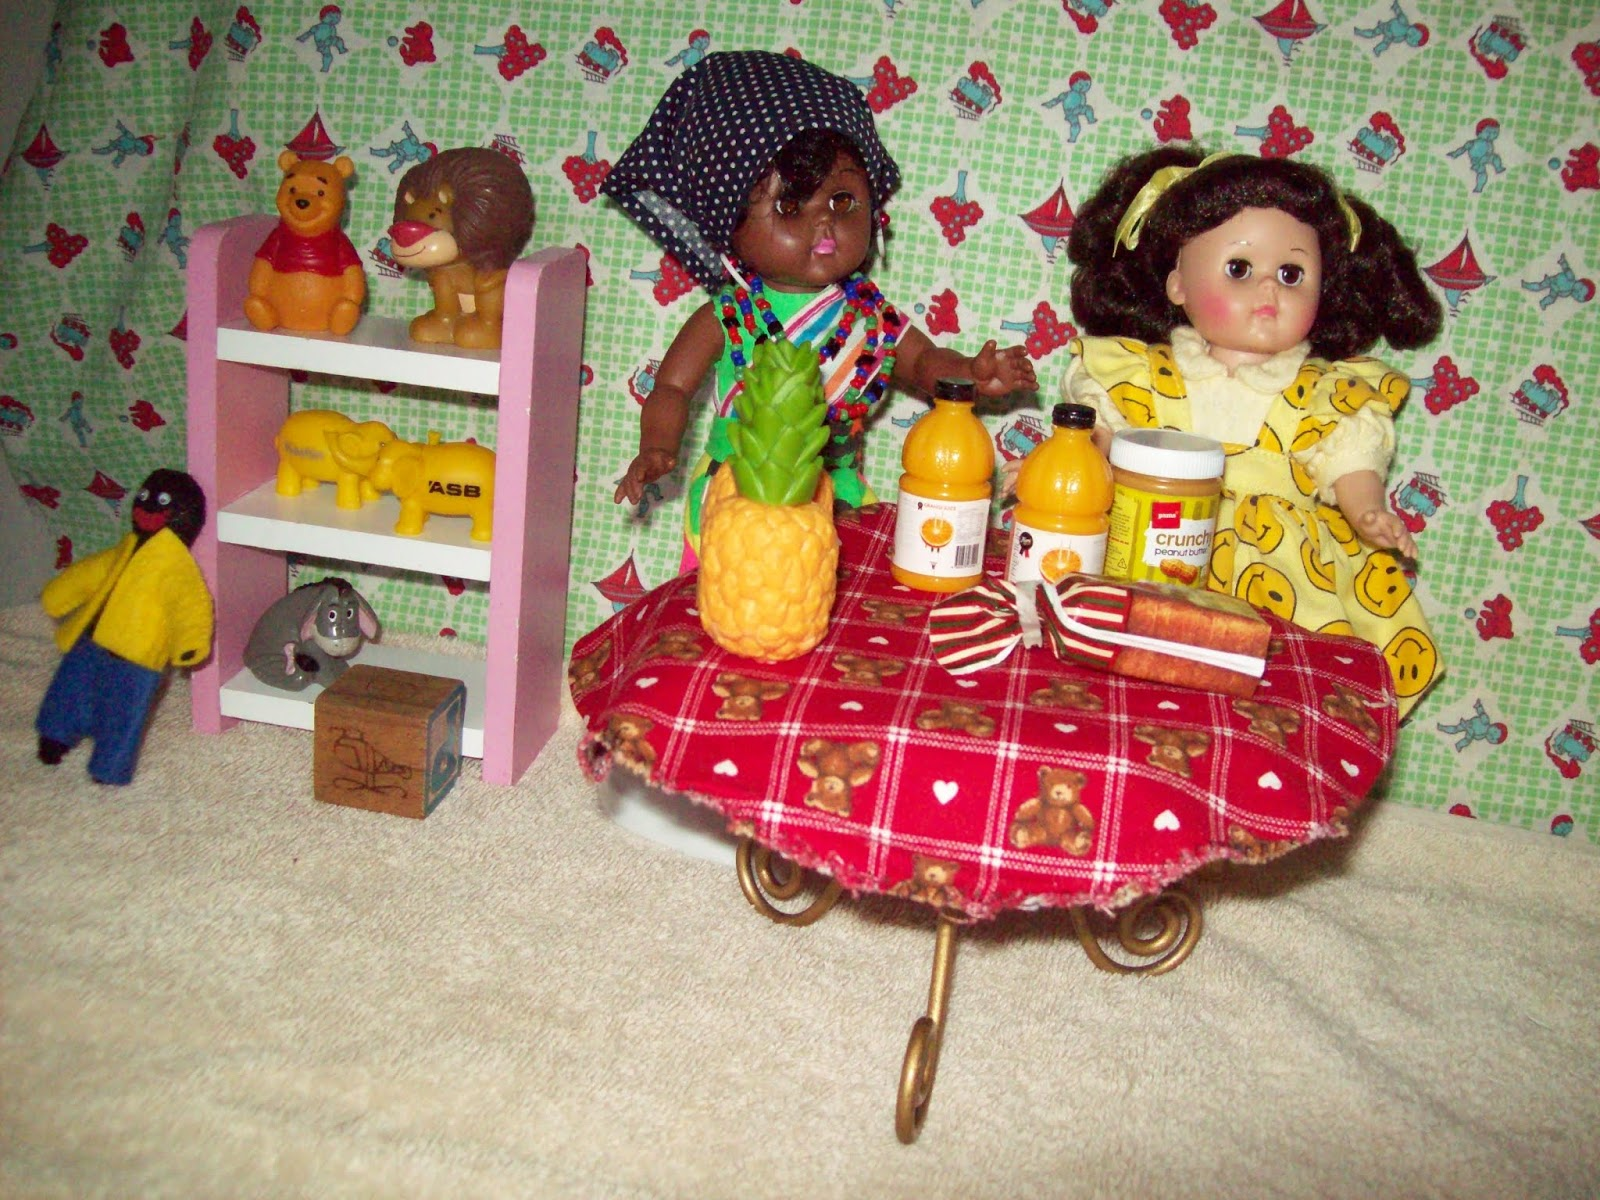 eaa0f1c3c4241 The first job they are asked to do is prepare the lunch for the baby girls.  Vaine is going to cut up the pineapple into small pieces and put orange  juice in ...